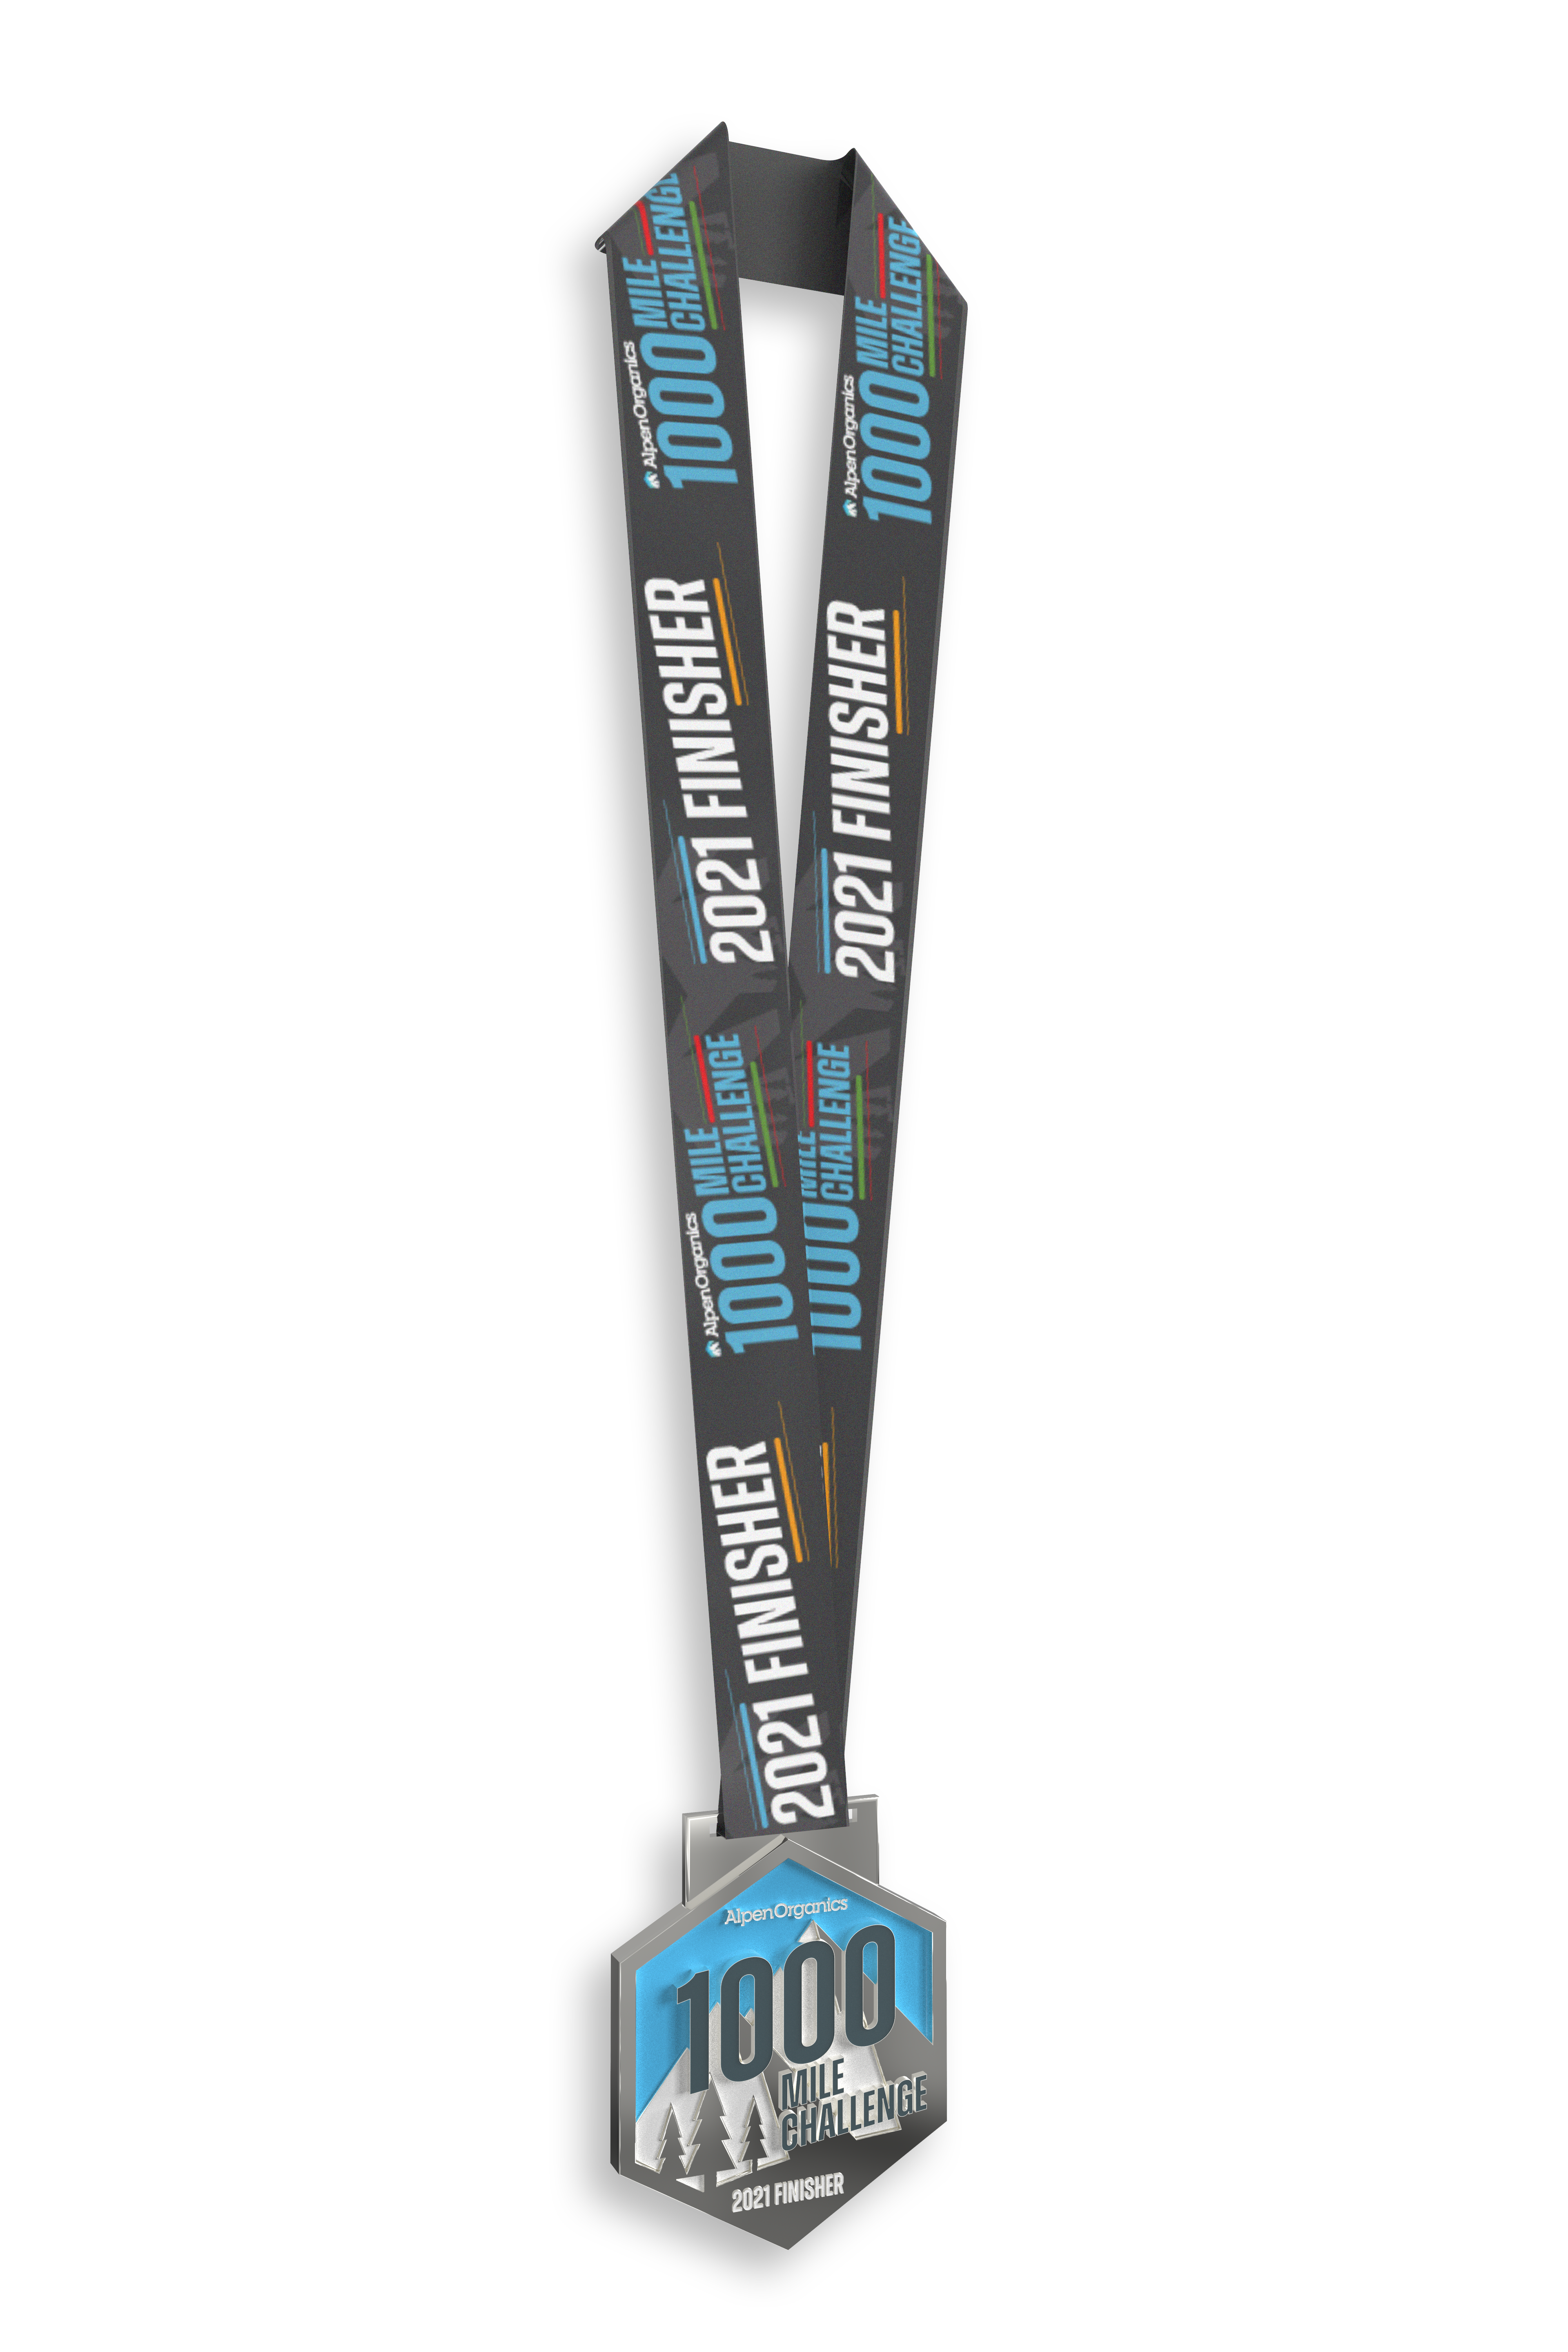 Alpen 1000 Finishers Medal